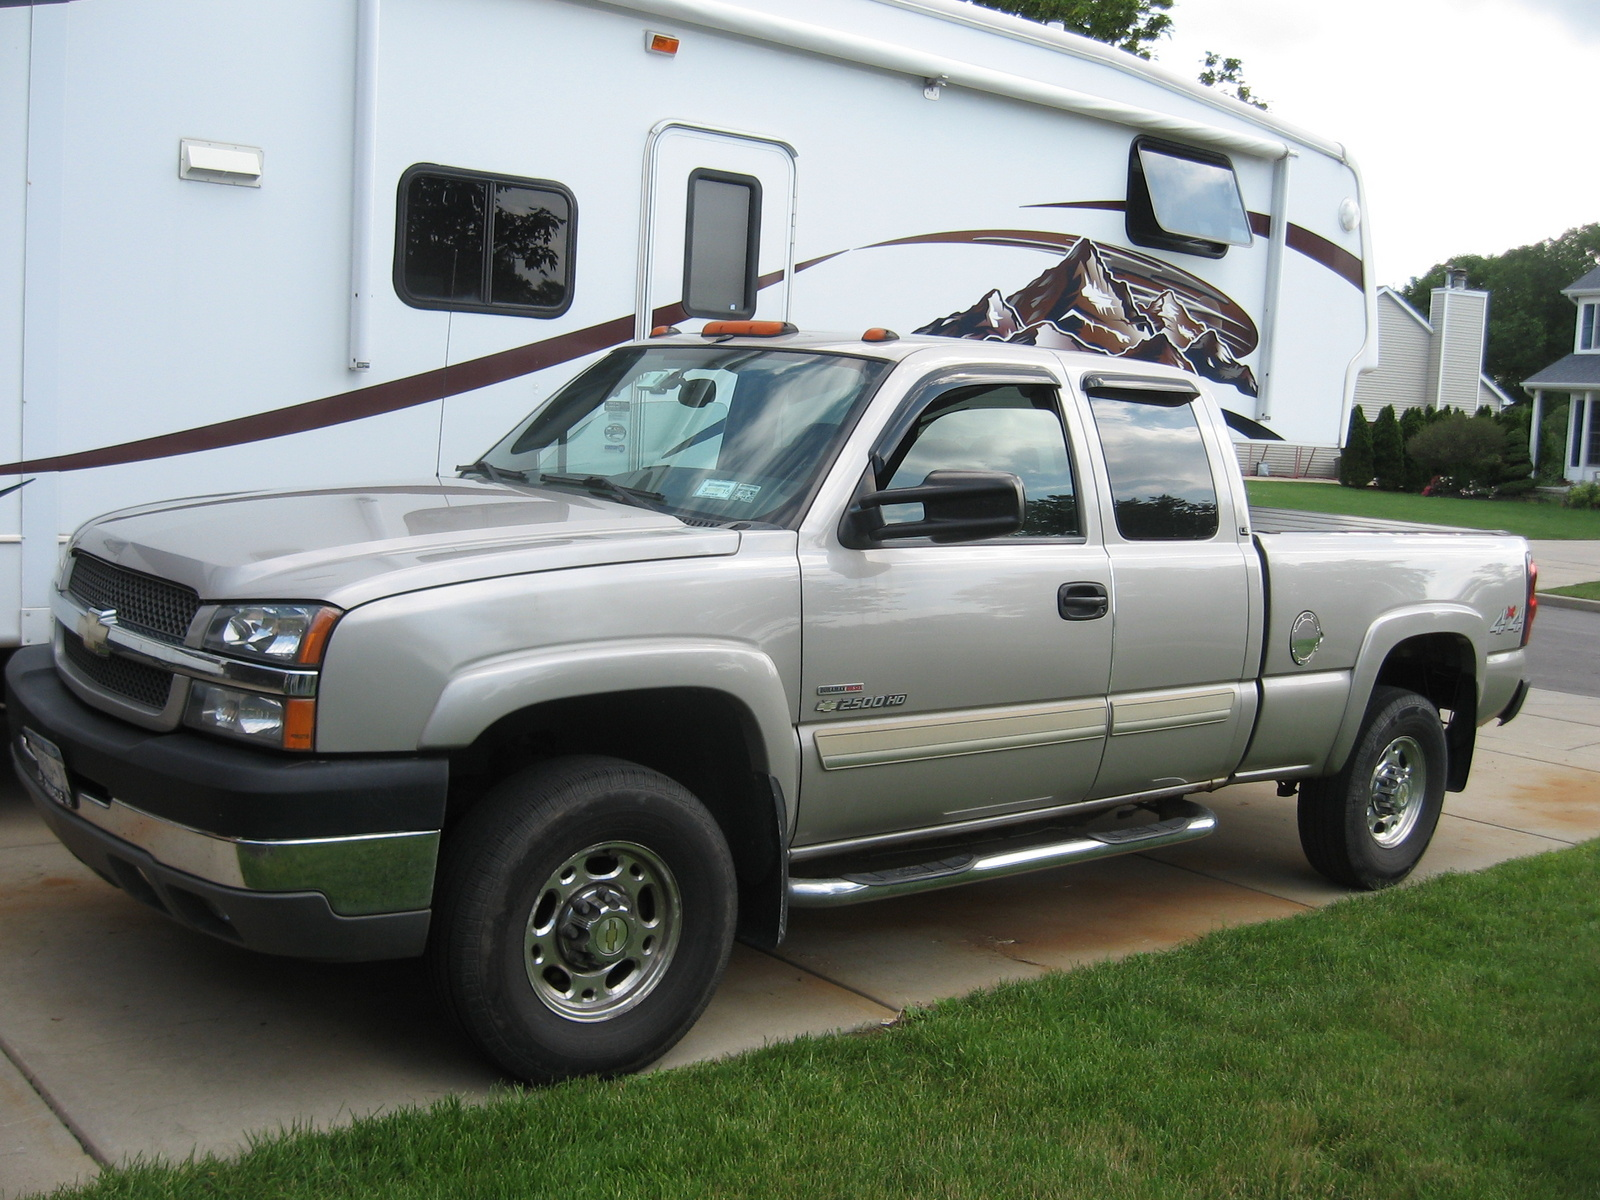 2004 Chevy Silverado 1500 Specs Html Autos Post